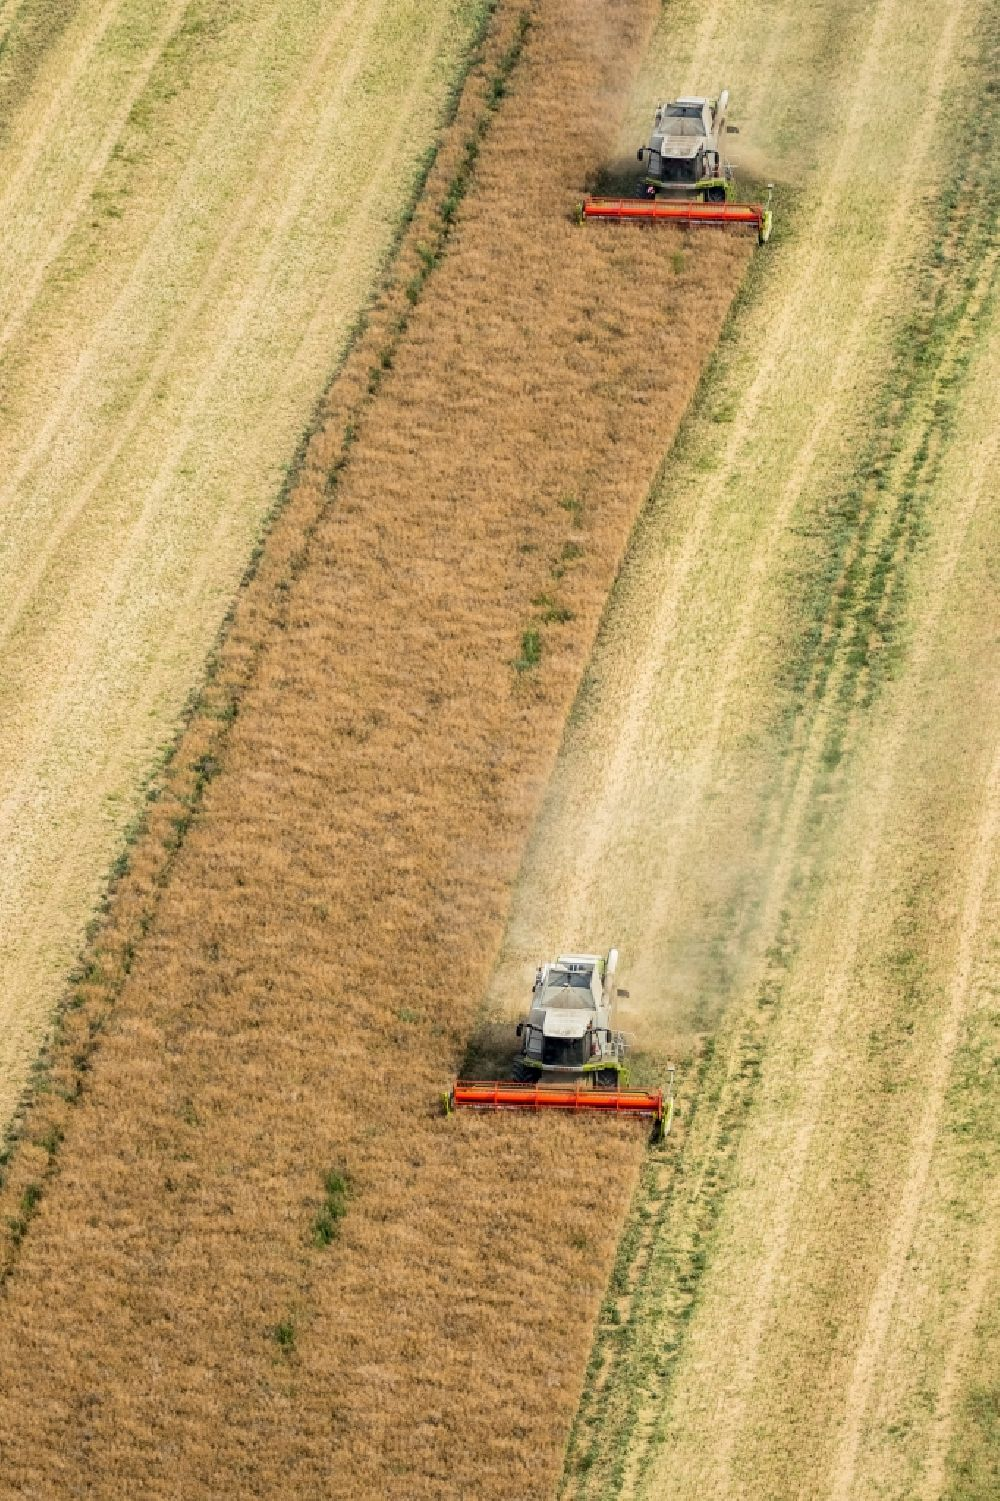 Aerial photograph Vipperow - Harvest use of heavy